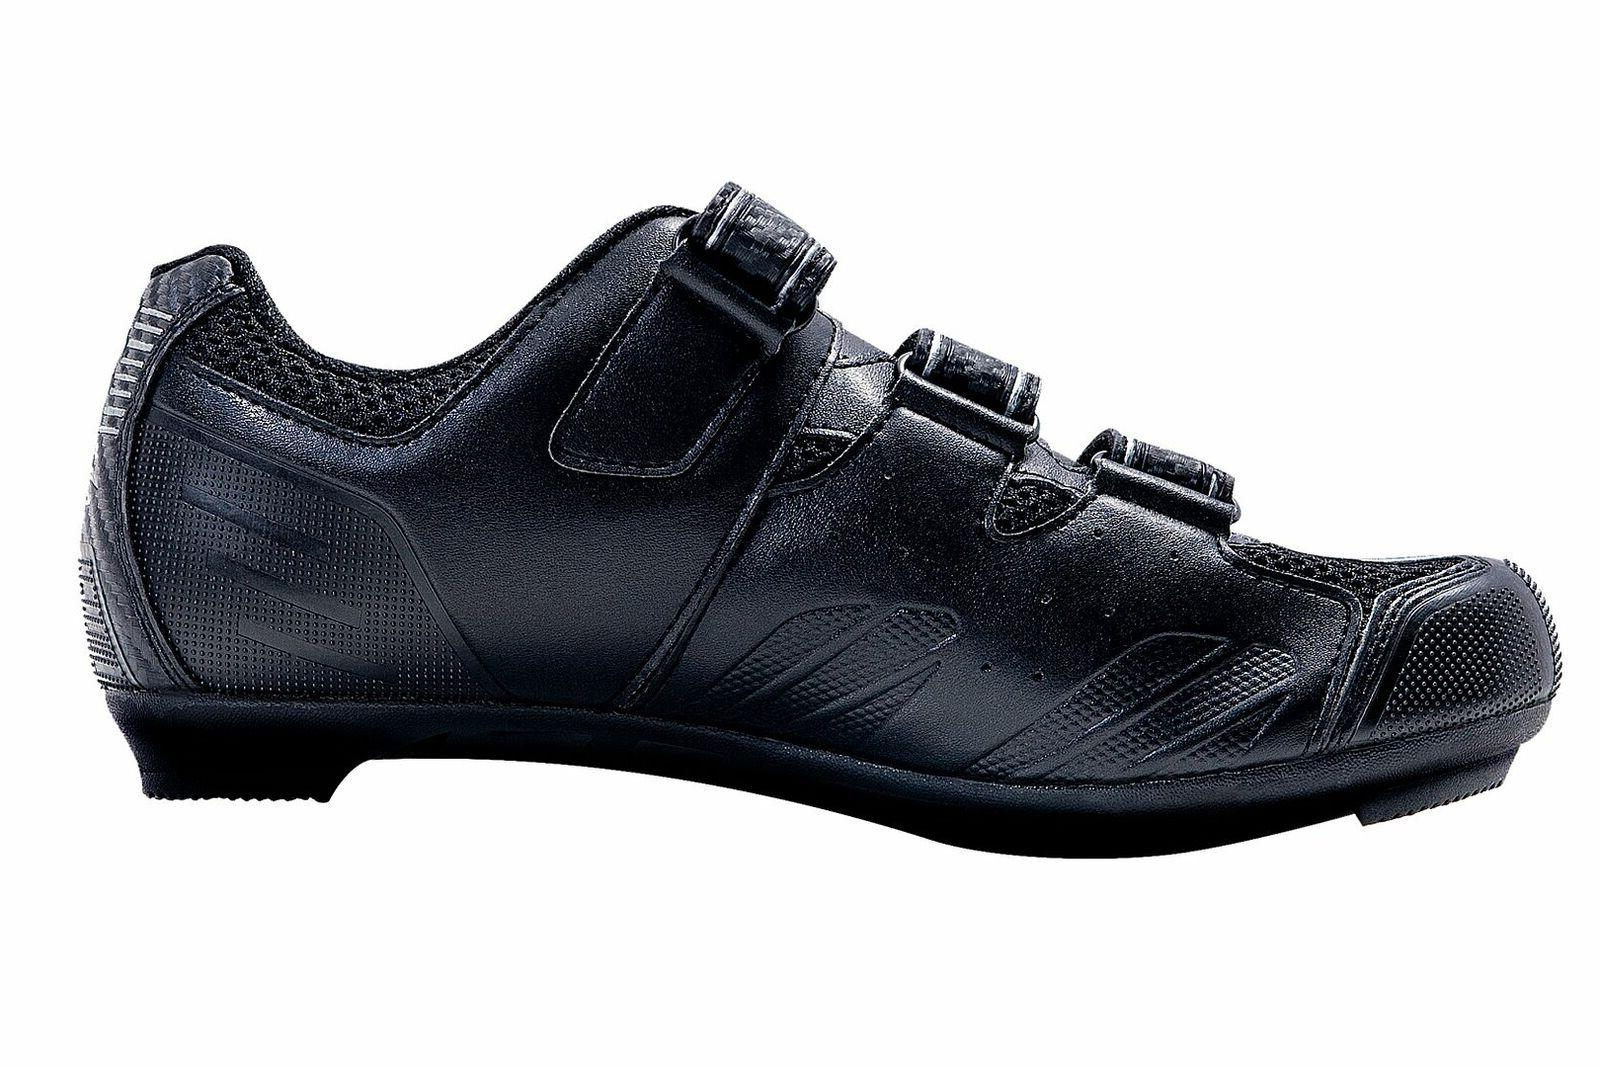 Zol Road Shoes